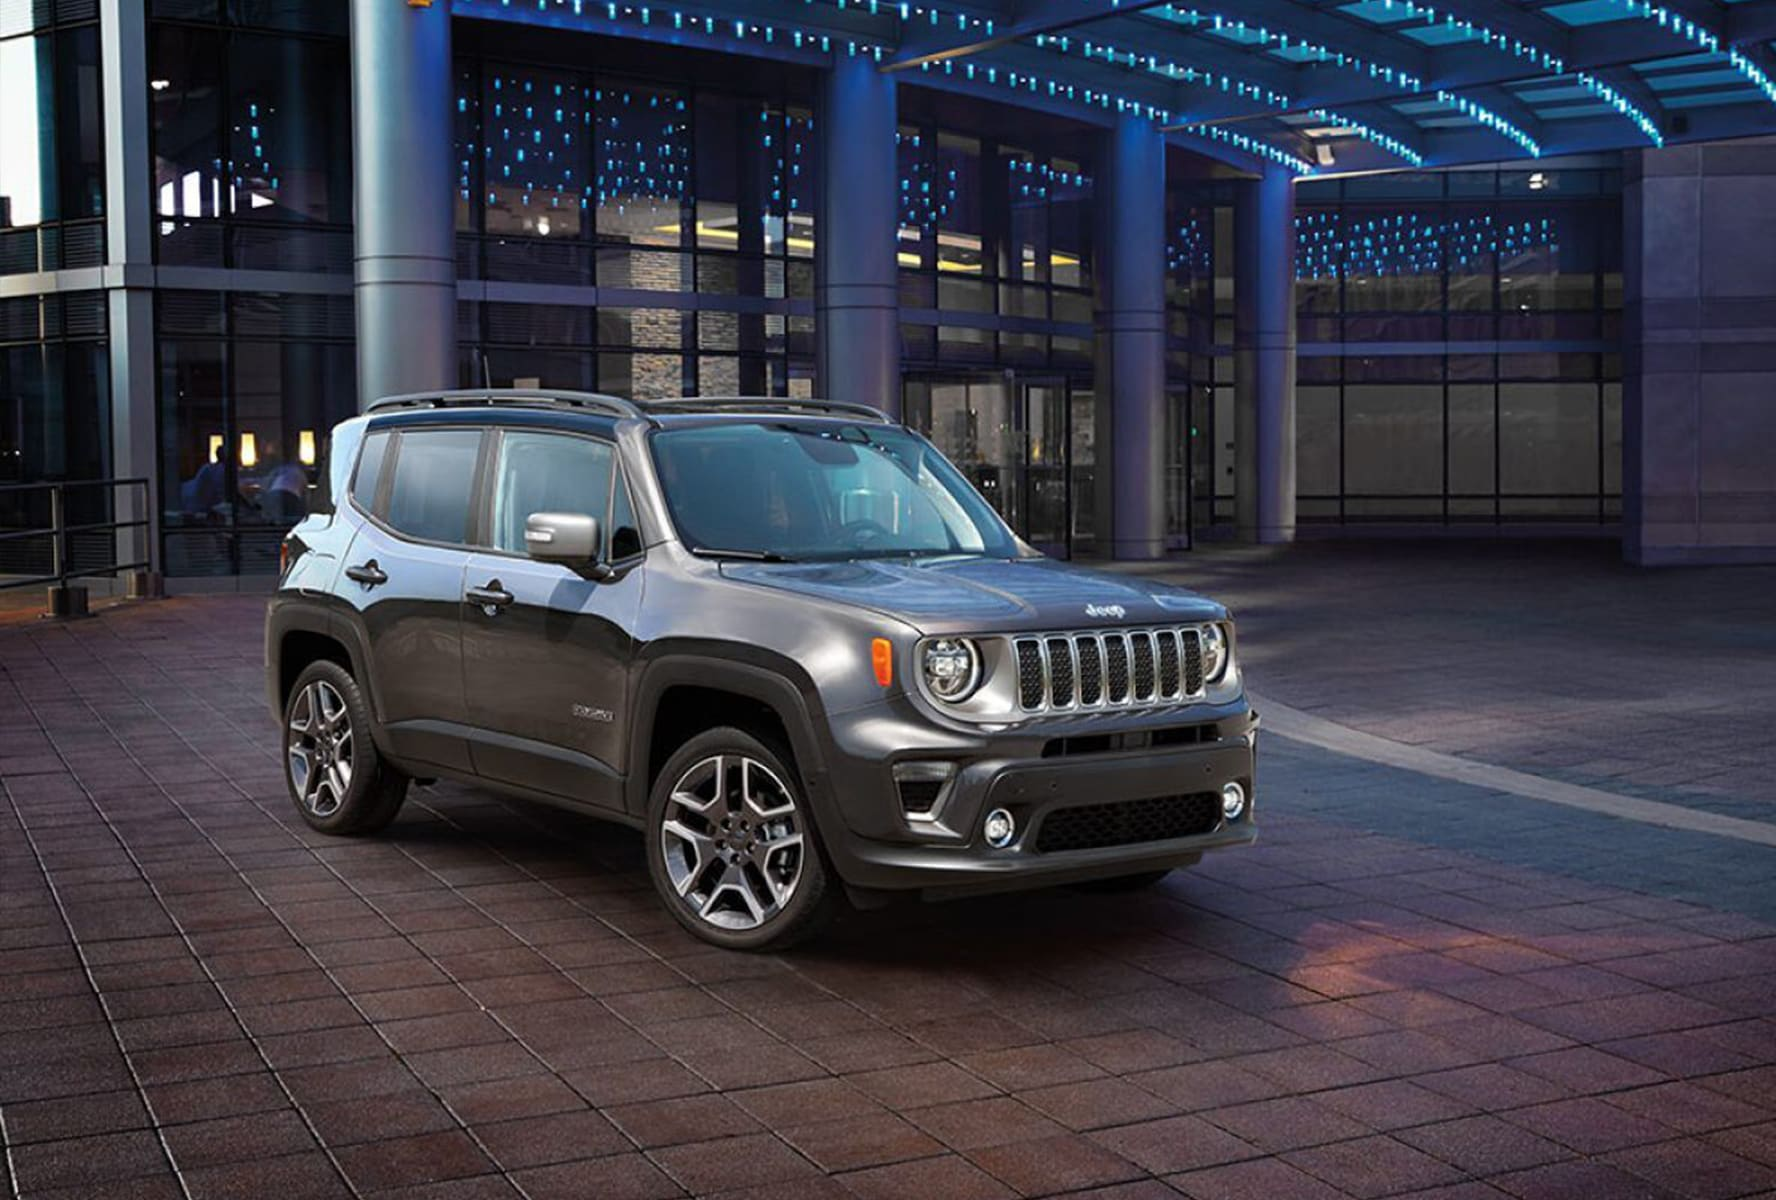 2019 Jeep Renegade exterior near Cincinnati, OH